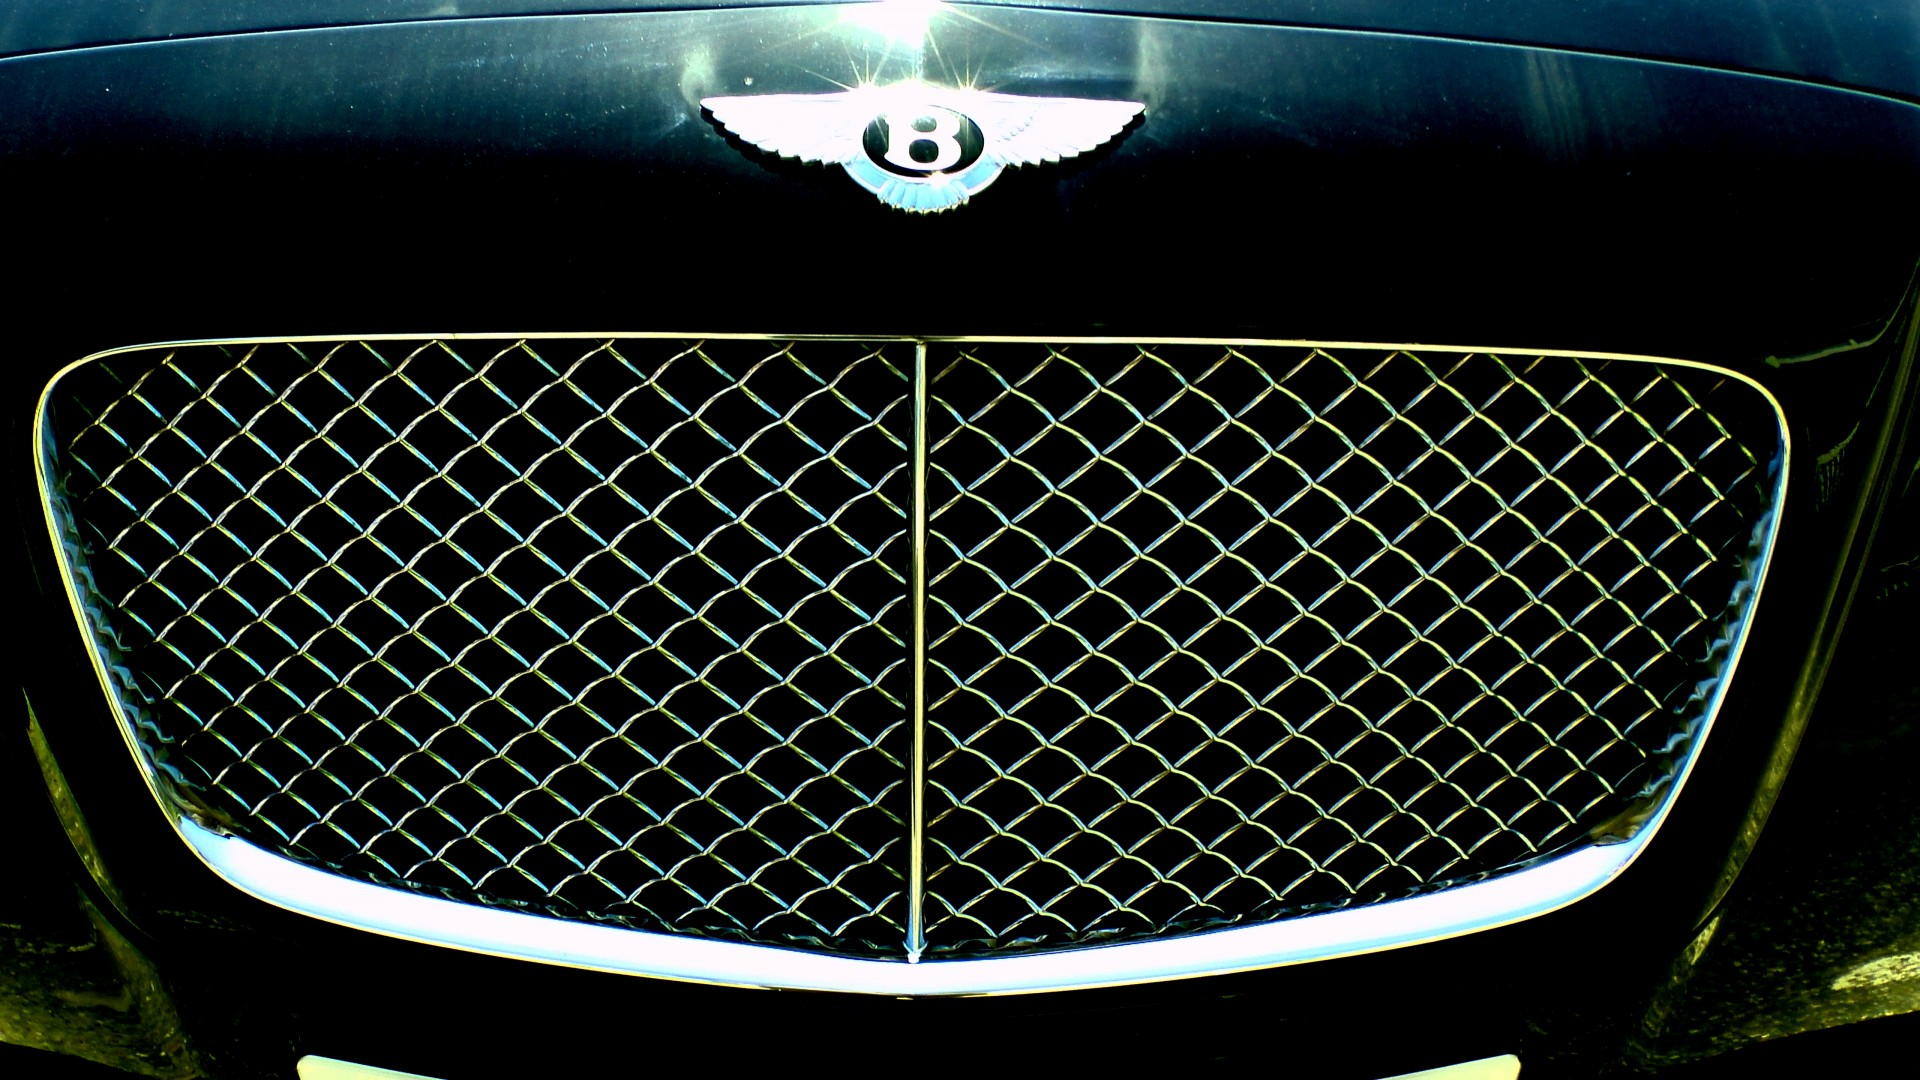 Car Grill Bentley 2 Door Coupe Car Grille Free Stock Photo - Public